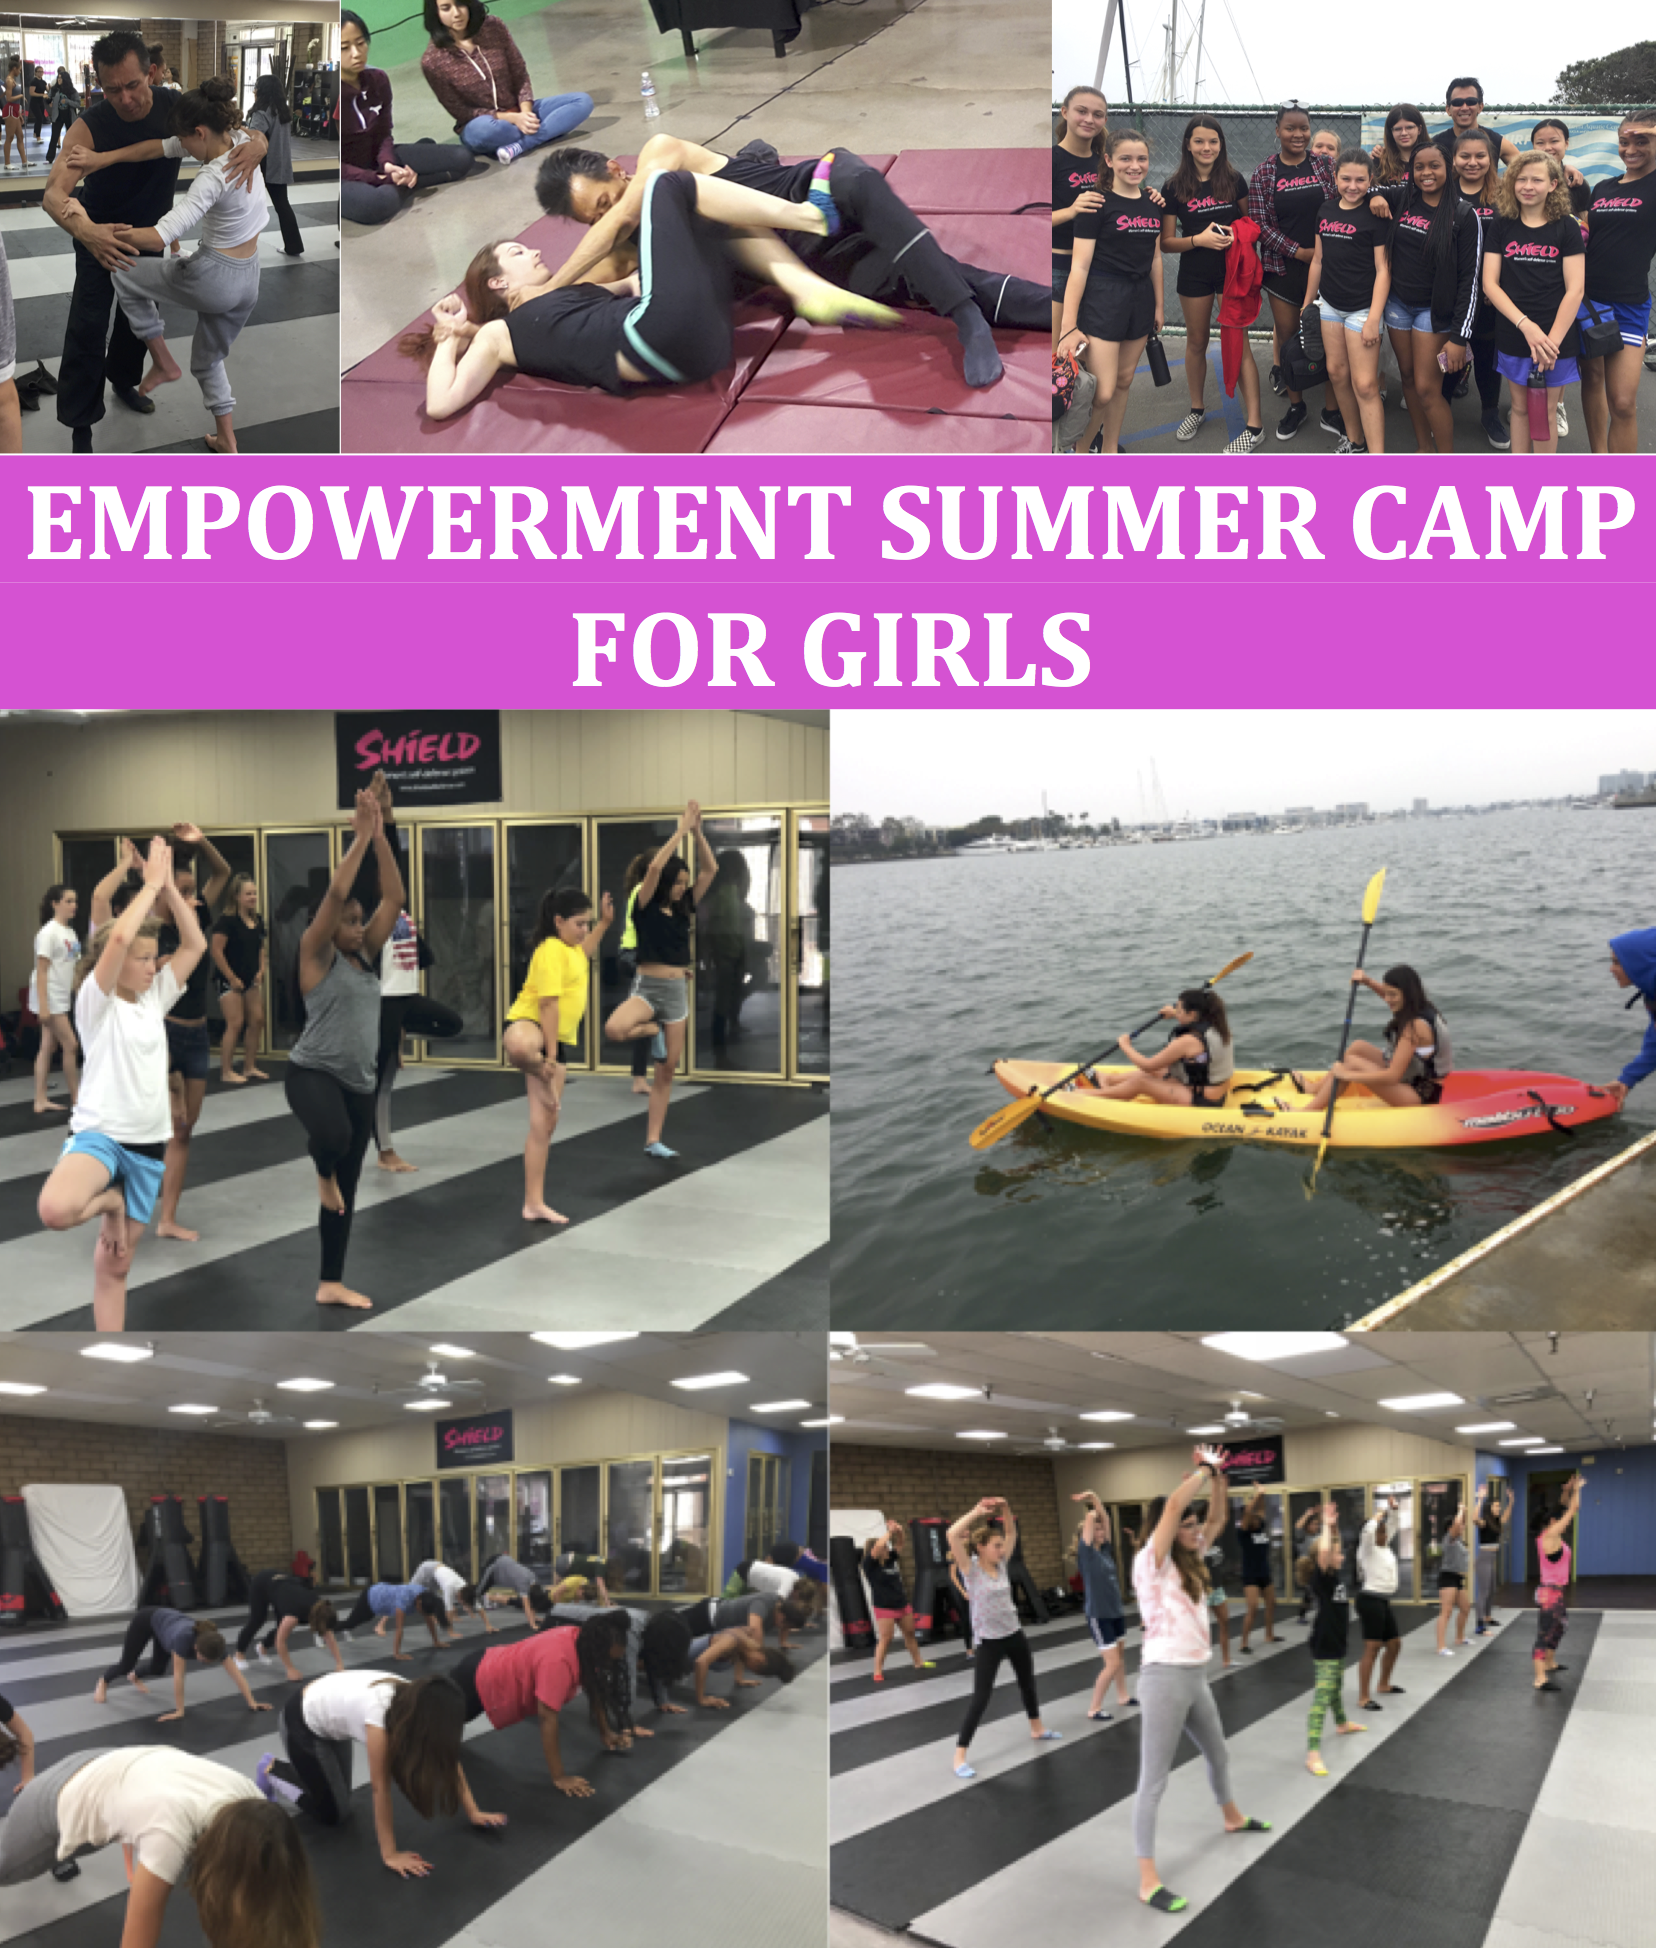 self defense classes for women and girls, summer camp